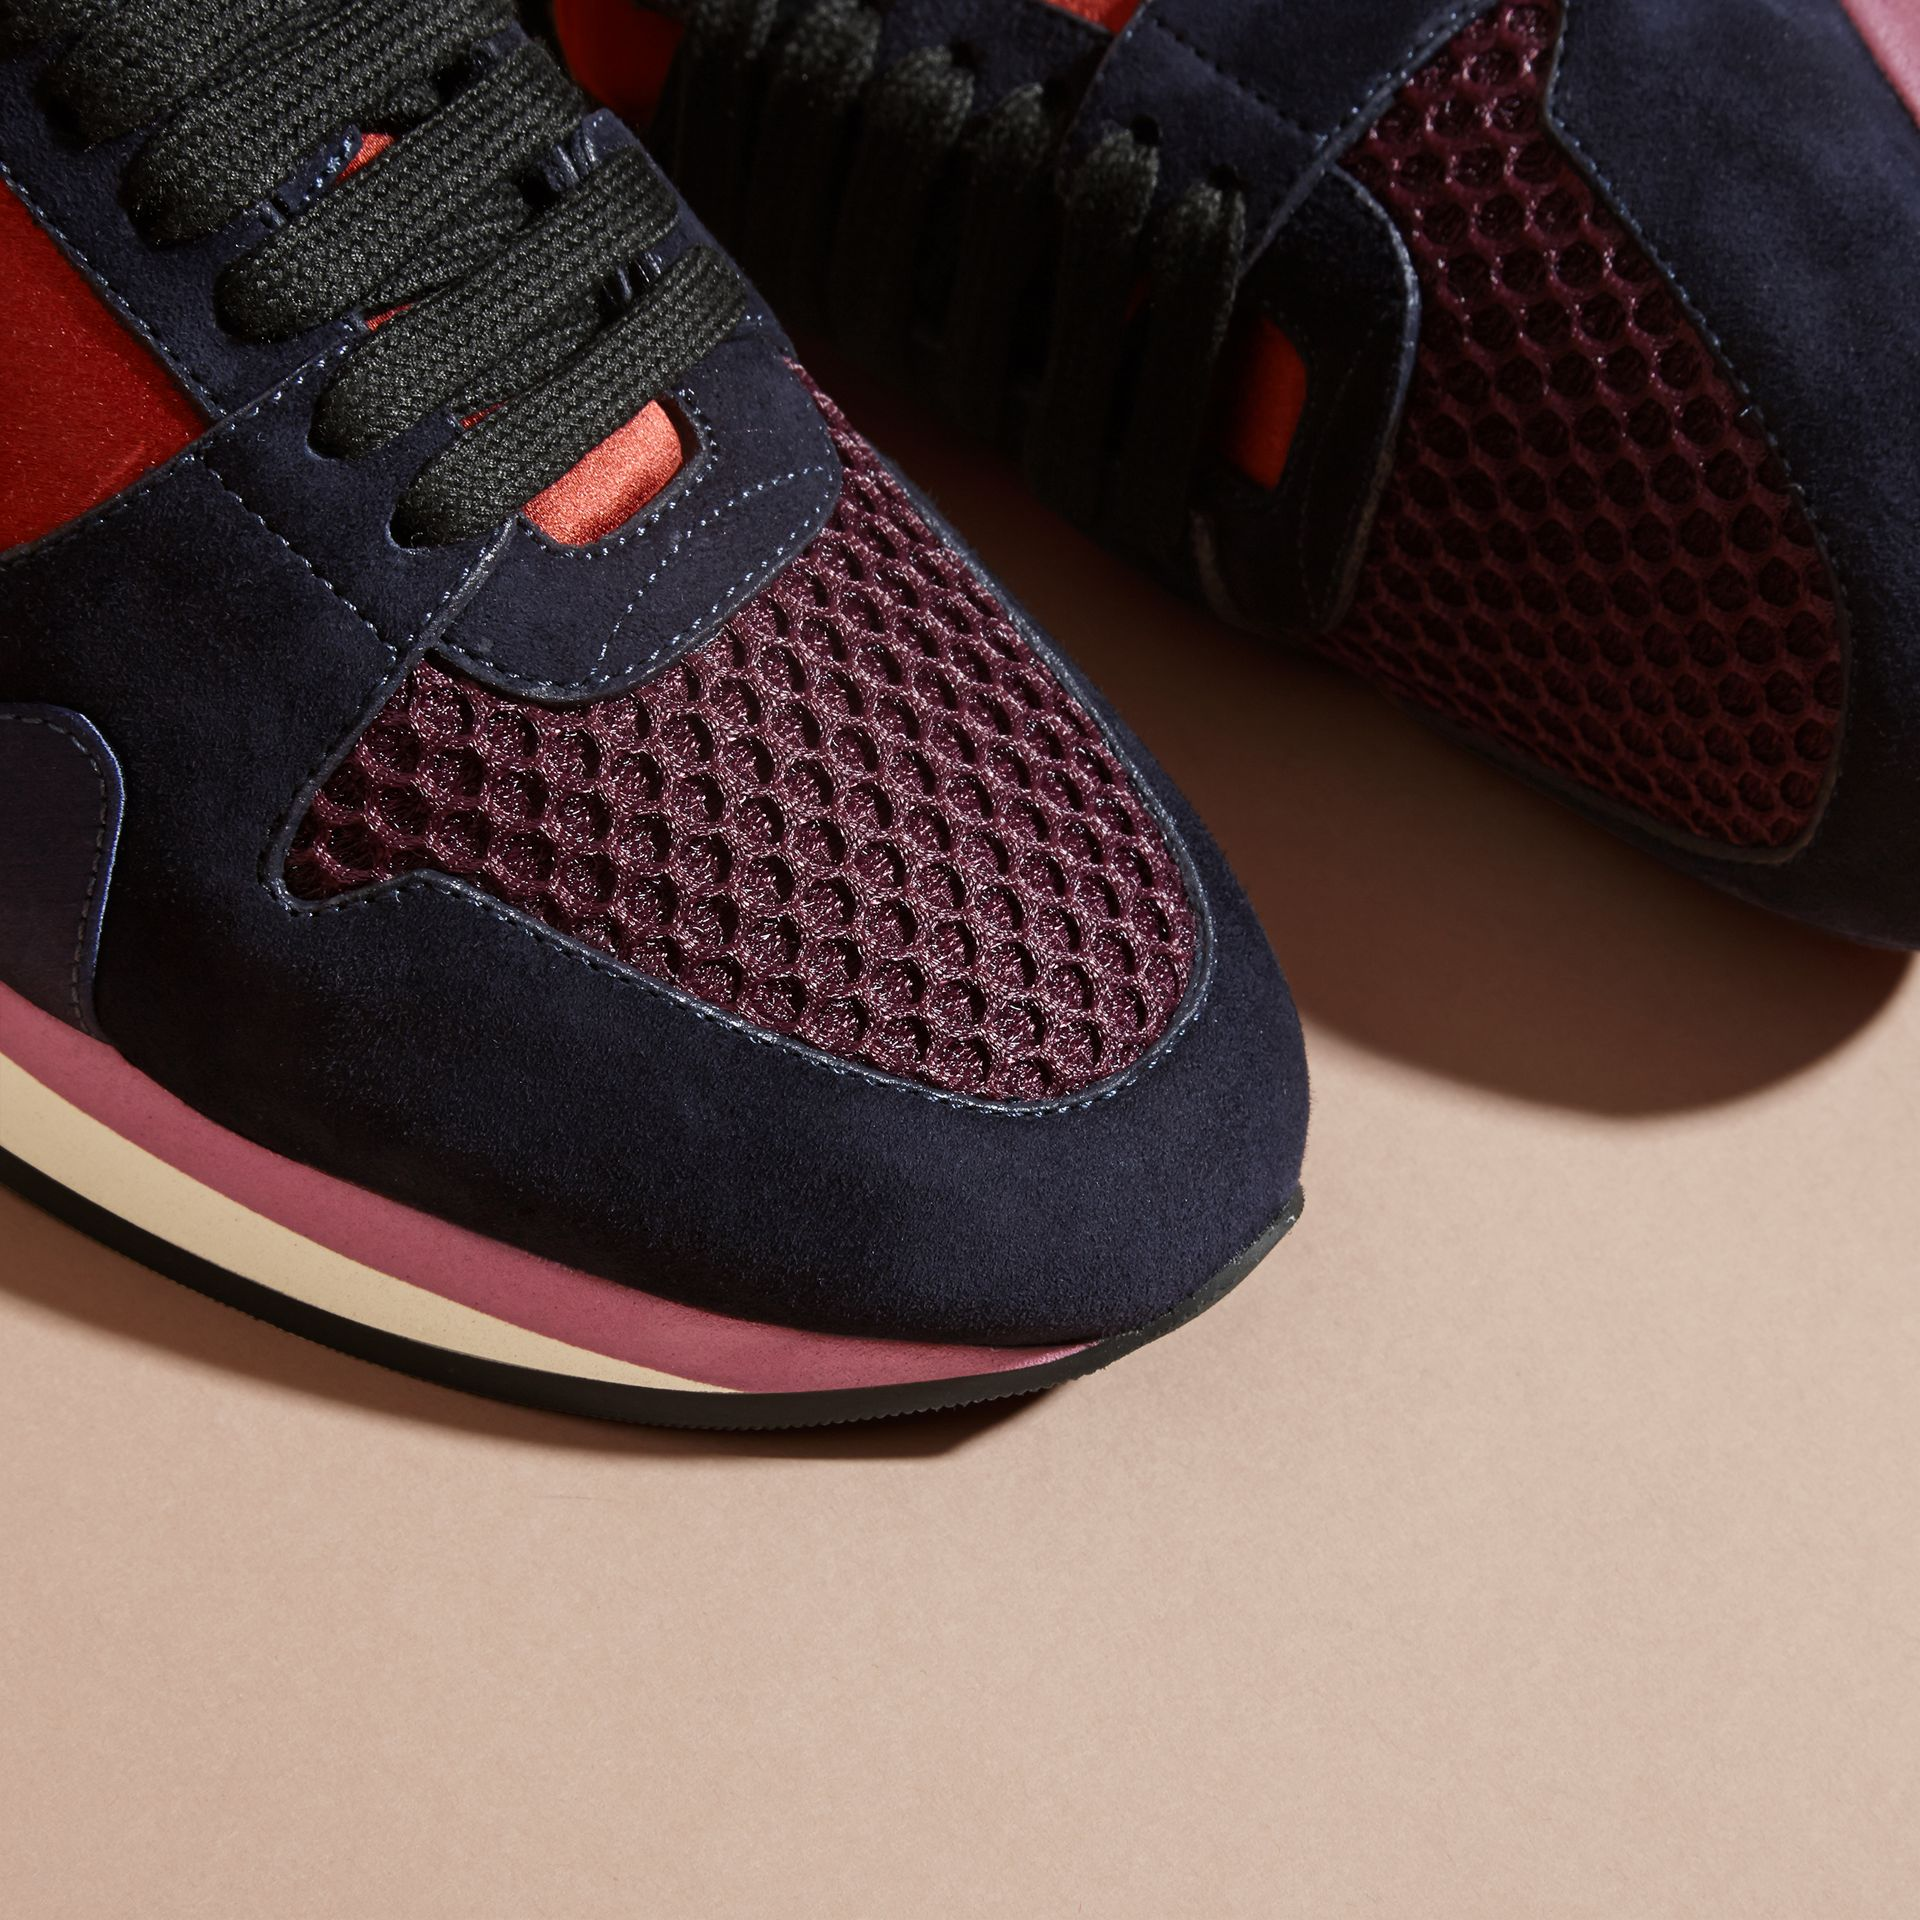 Russet red The Field Sneaker in Suede and Mesh - gallery image 2